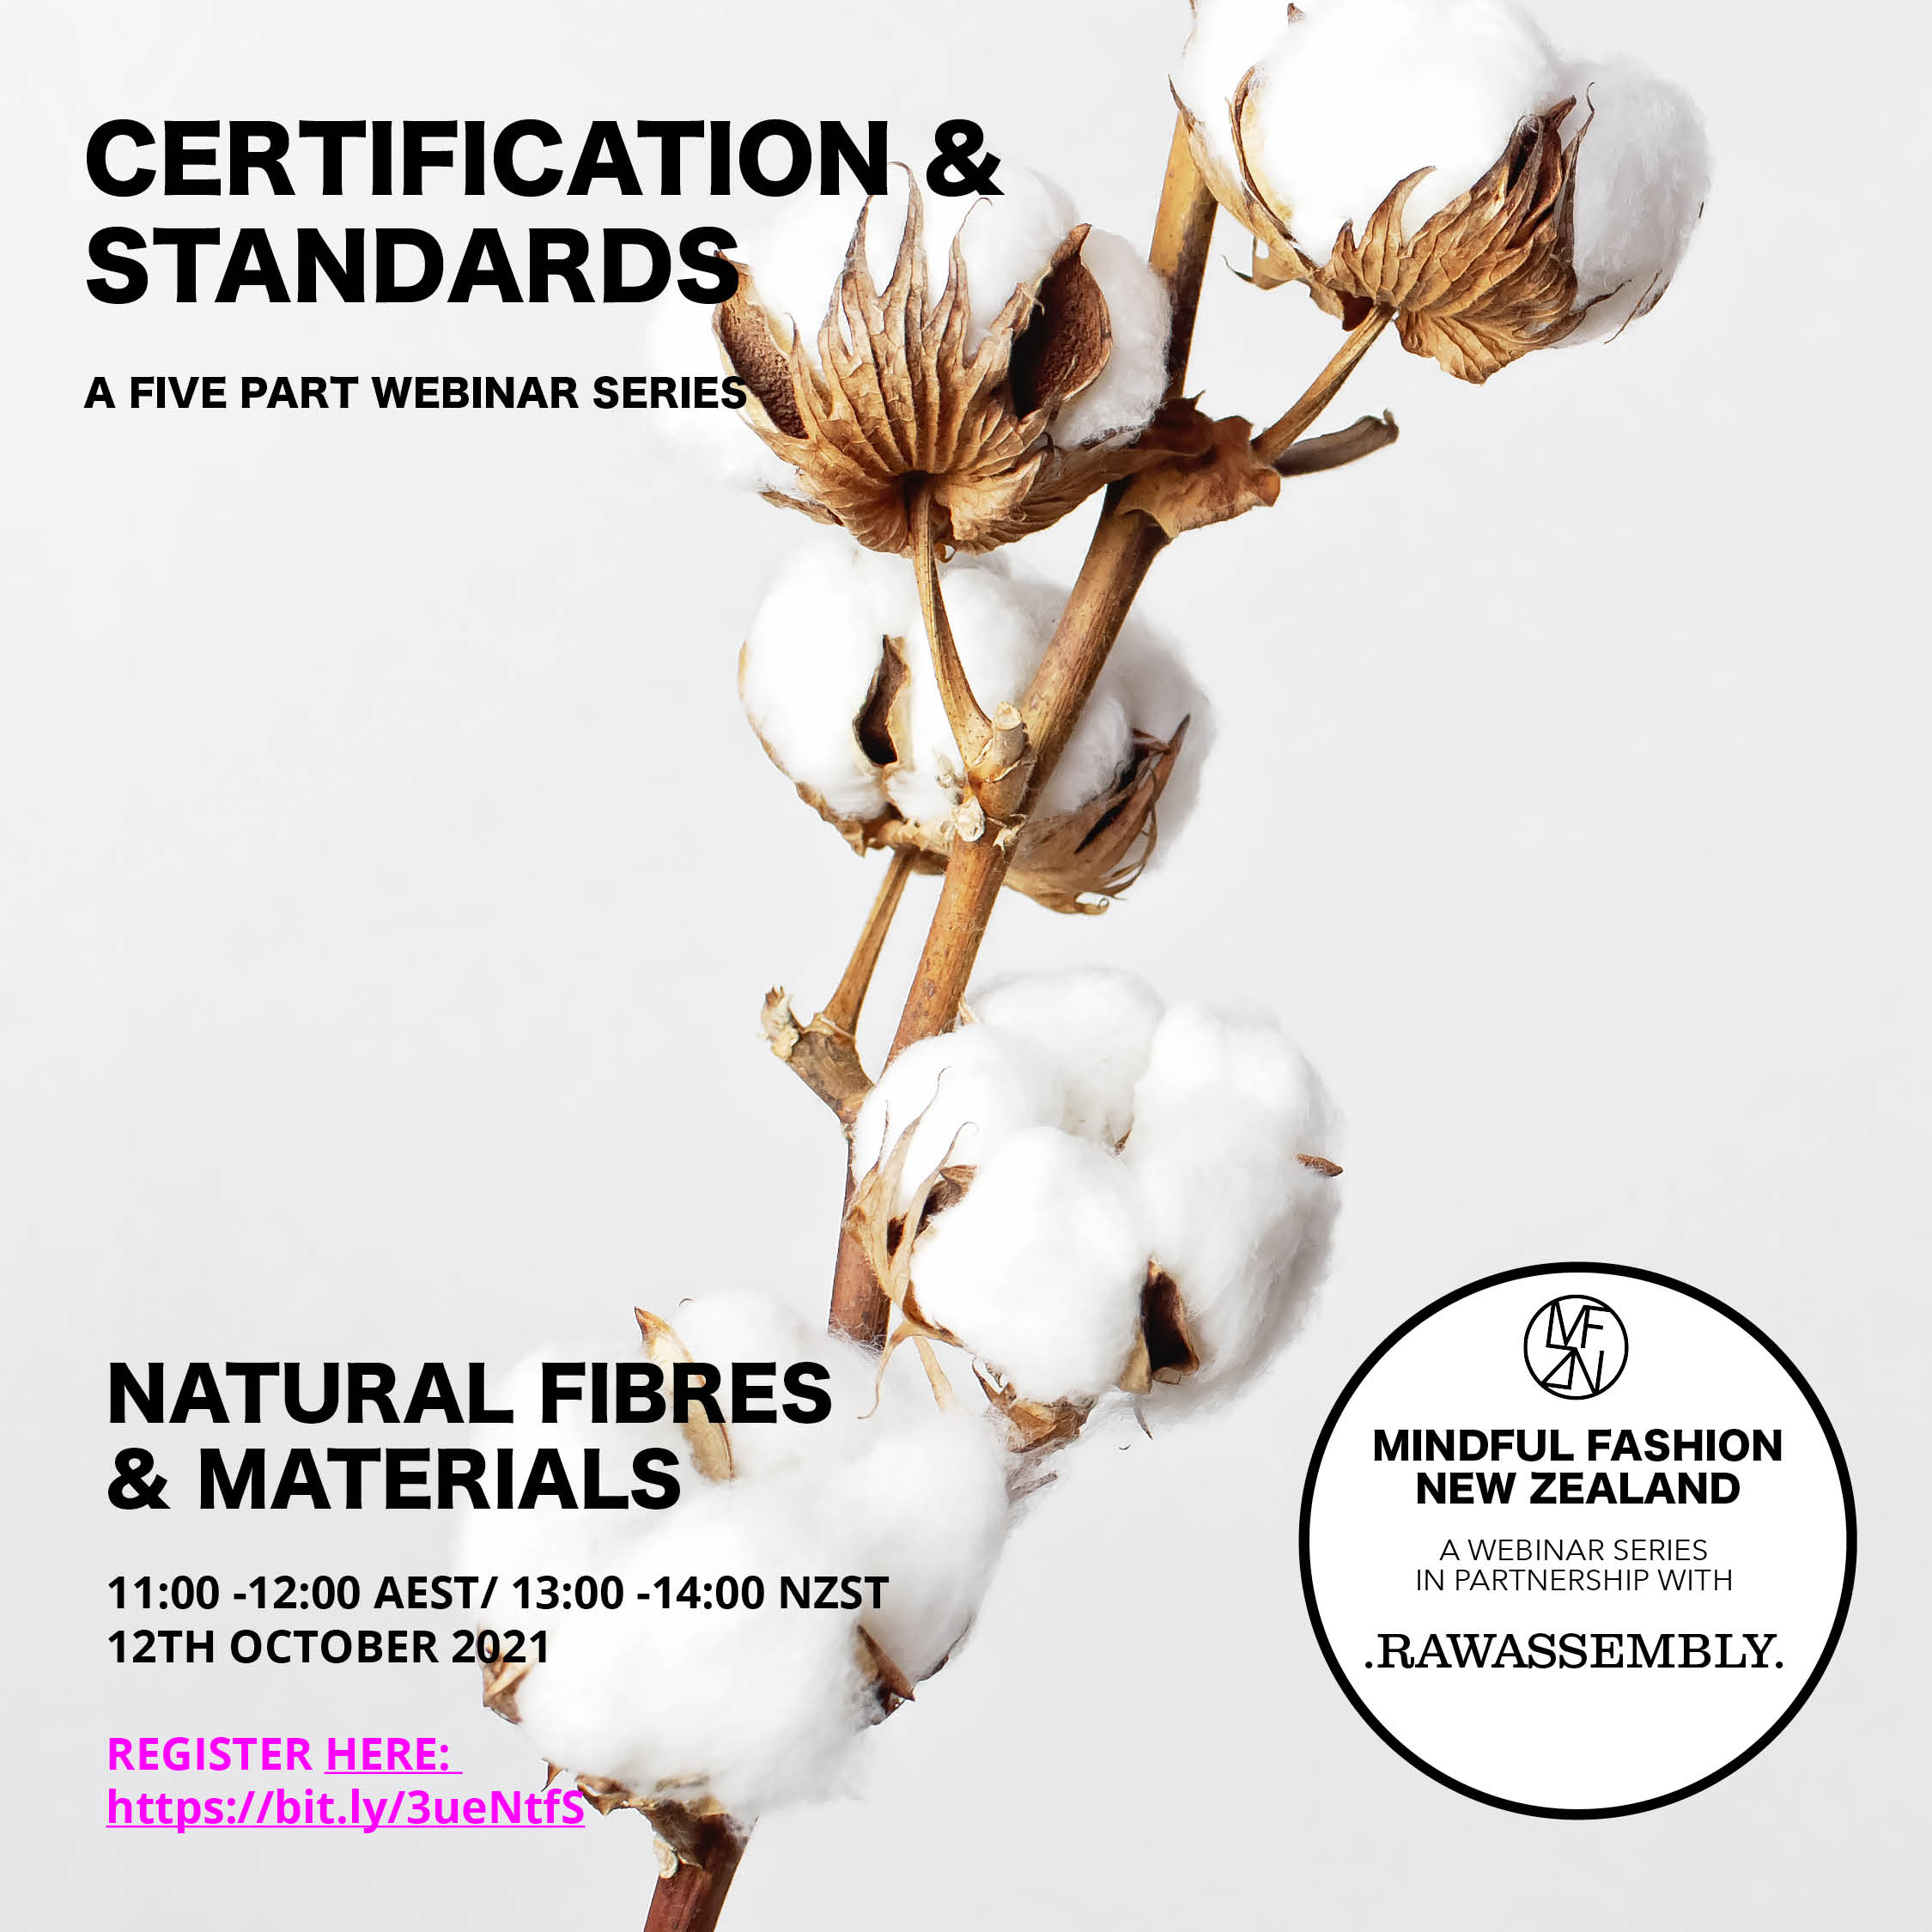 Natural fibre standards and certifications